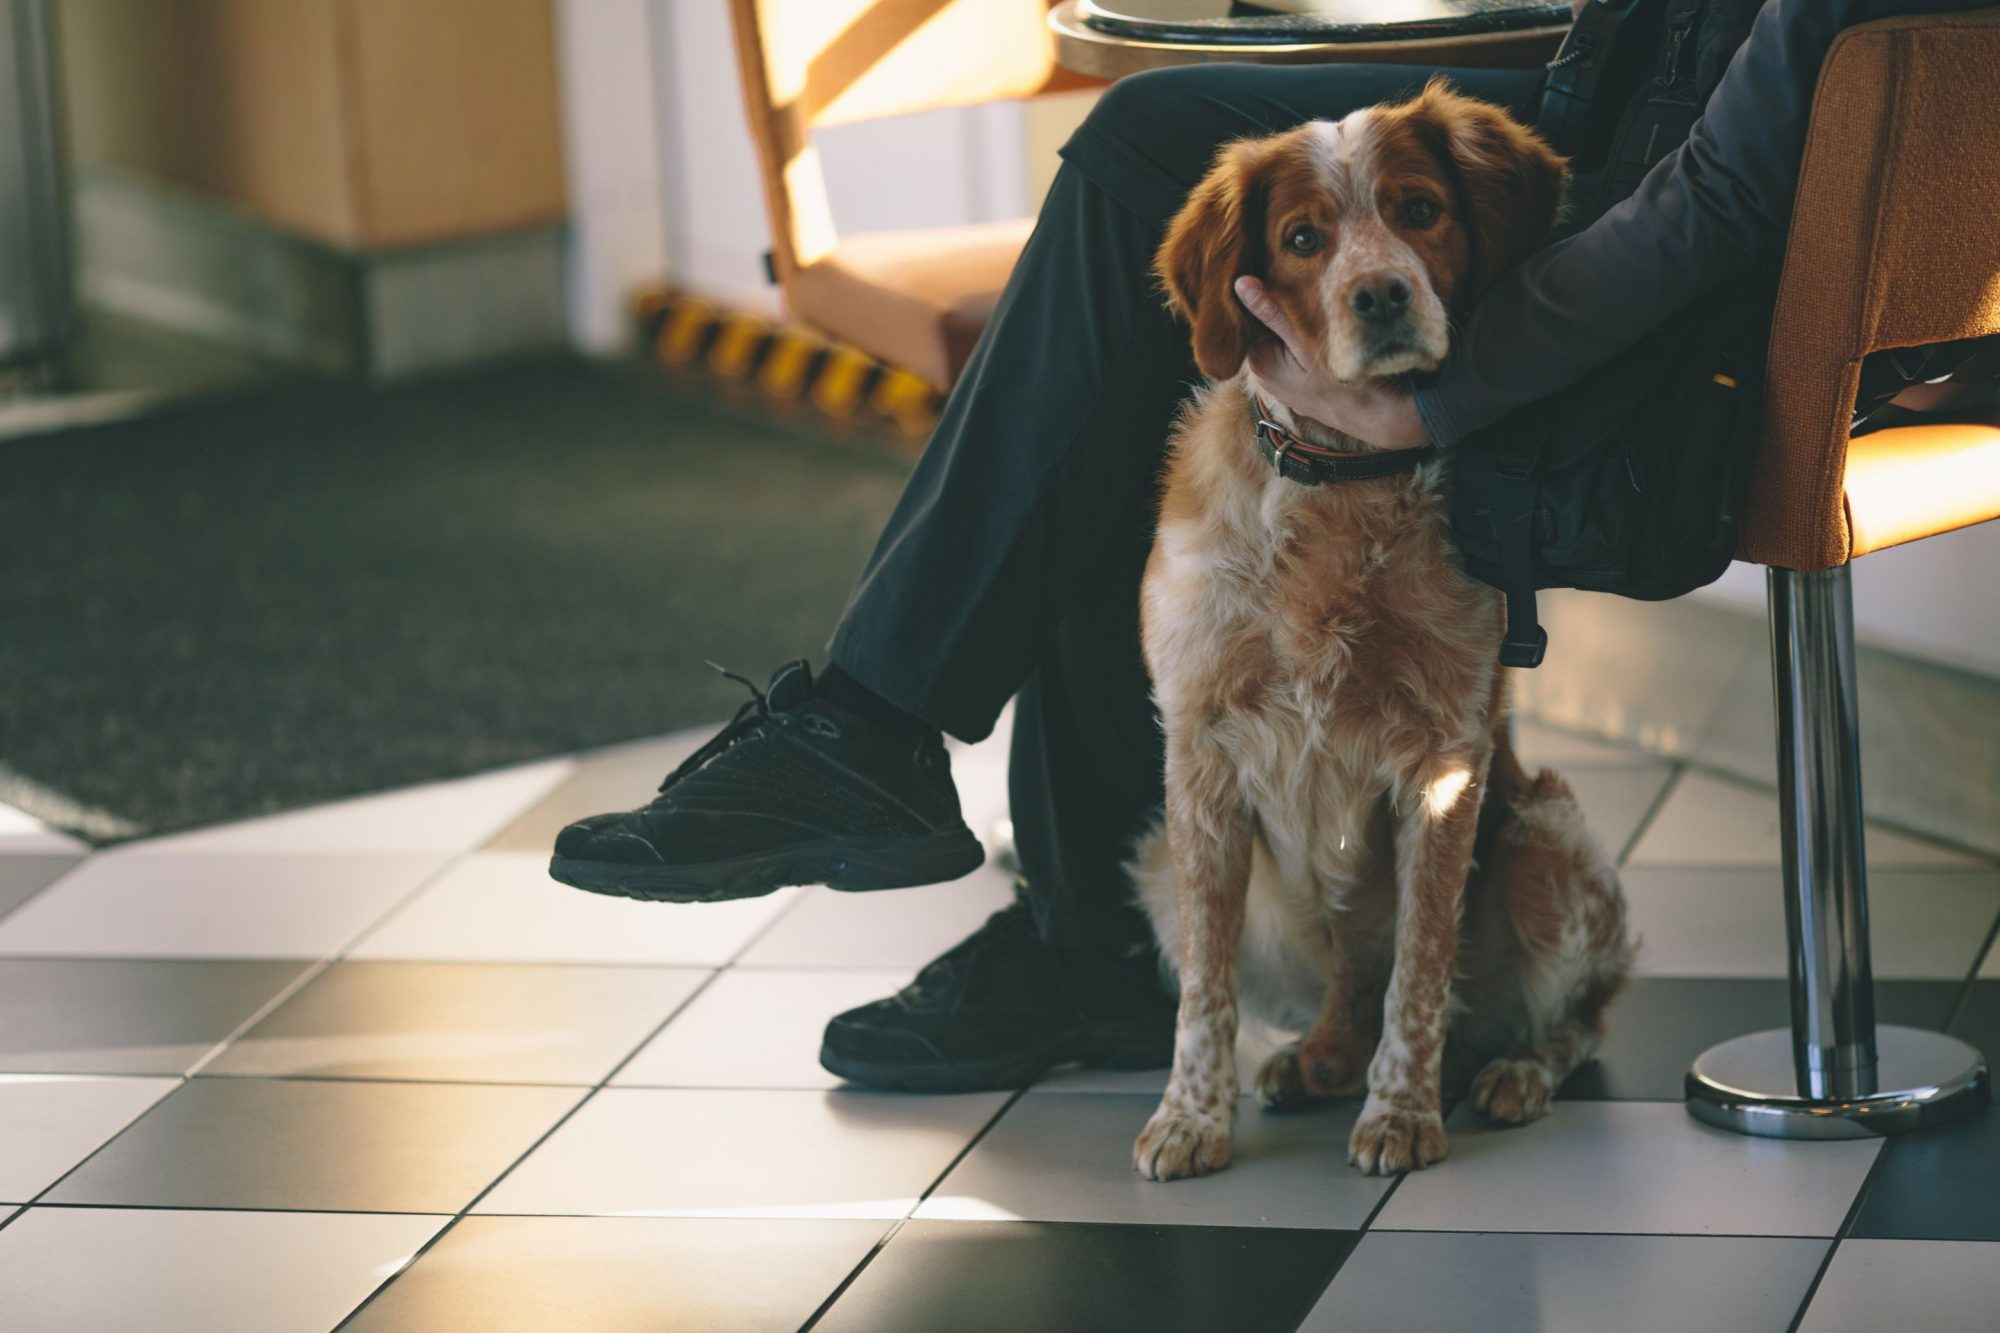 A brown and white dog waiting for a veterinarian appointment with its owner.